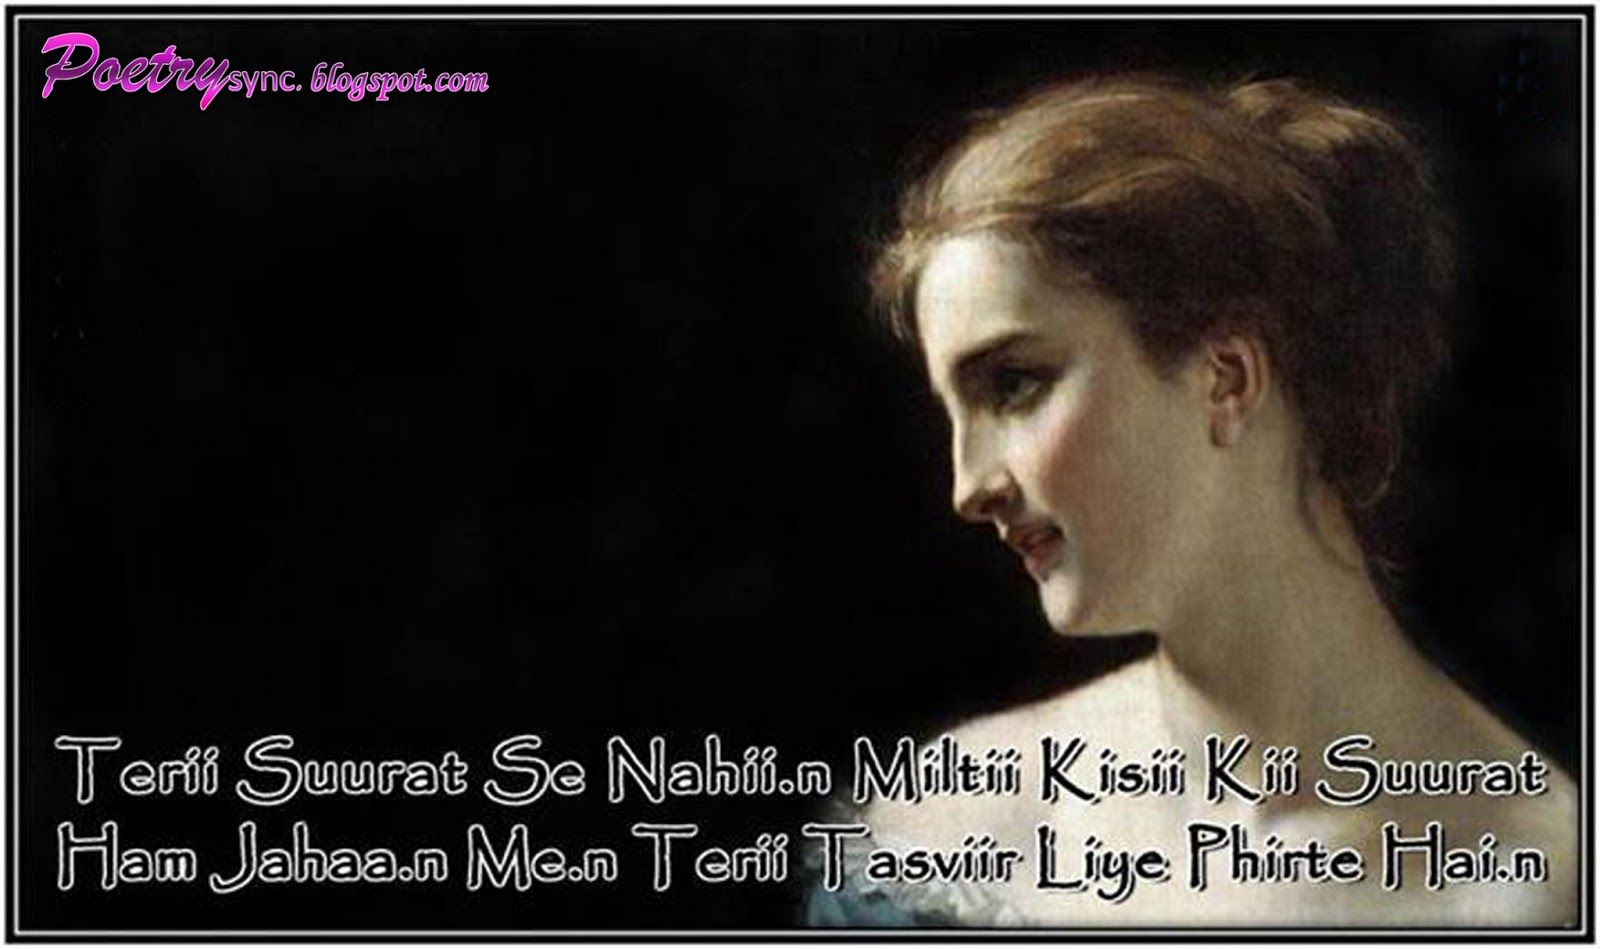 Sad Quotes About Love In Roman Urdu : sad love quotes for facebook status in english 7WKmN3uex in love ...